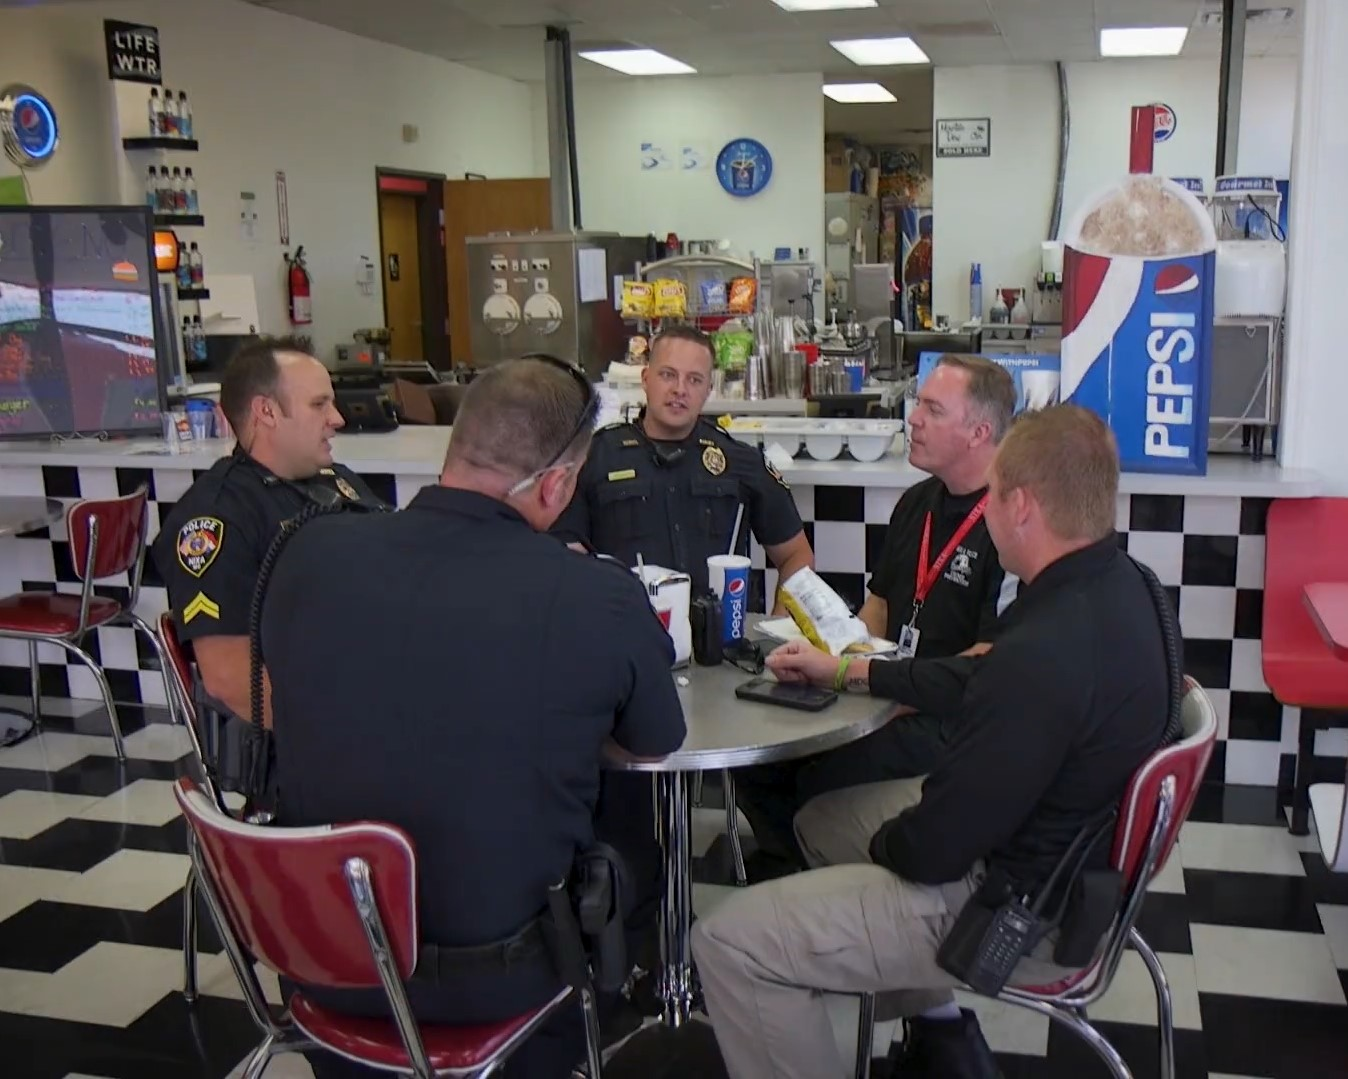 OFFICERS EATING LUNCH